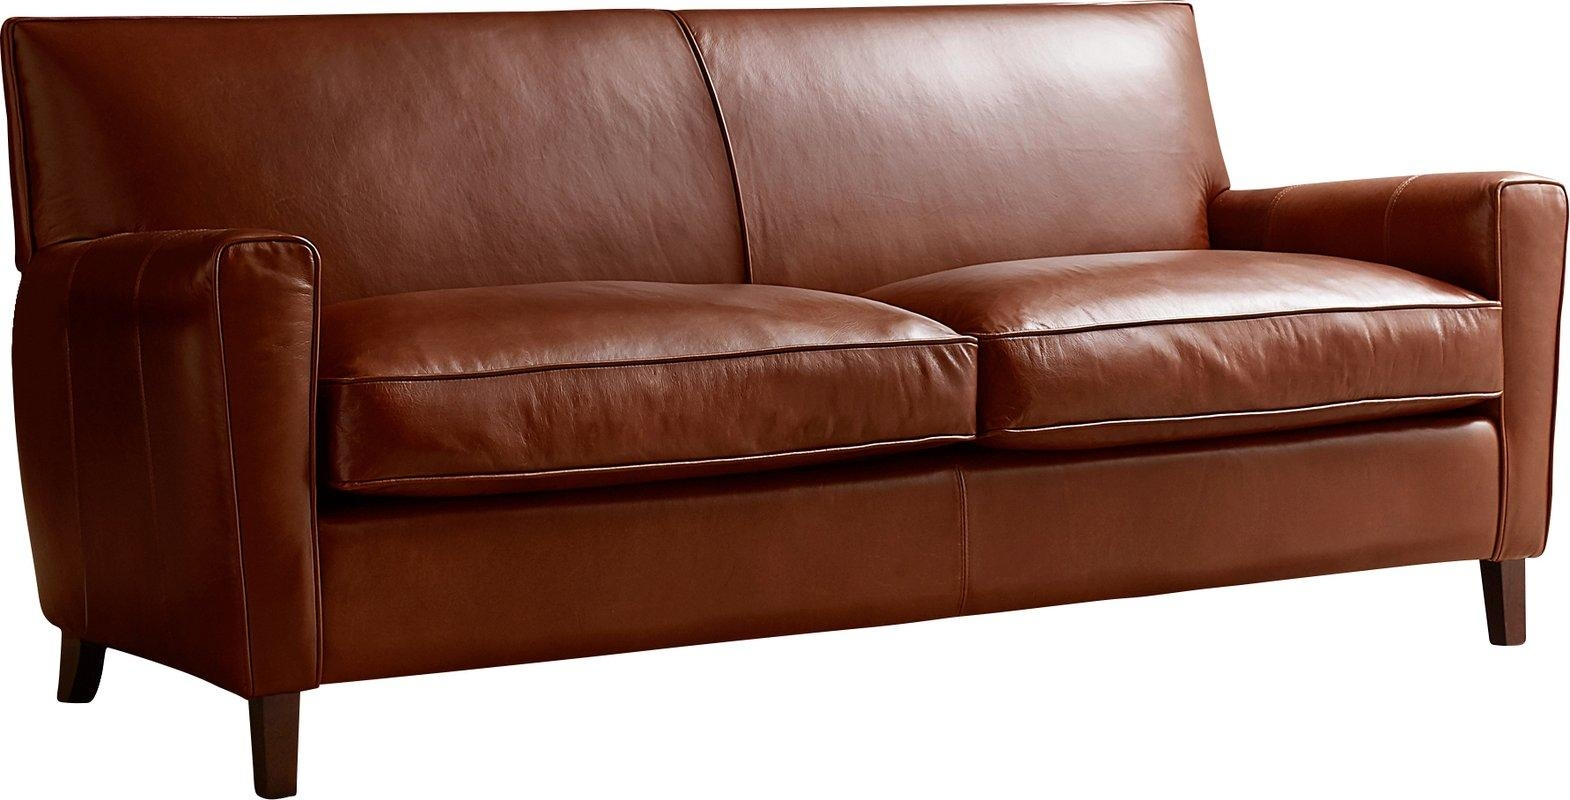 Allmodern Custom Upholstery Foster Leather Sofa & Reviews | Wayfair For Foster Leather Sofas (View 5 of 20)